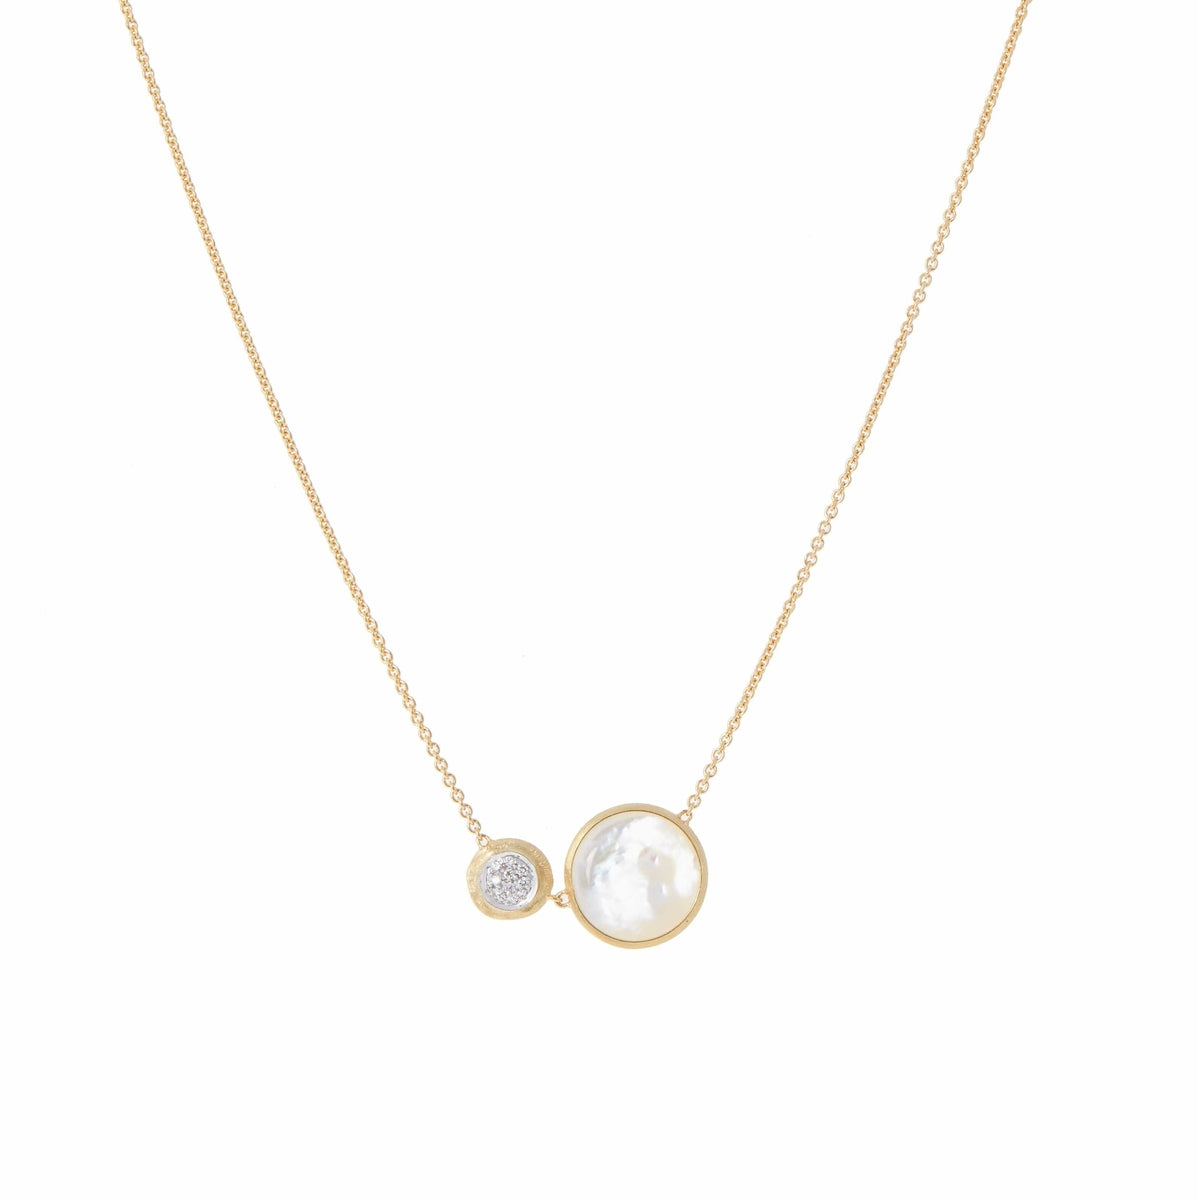 18K Jaipur Necklace - CB2172 B MPW YW